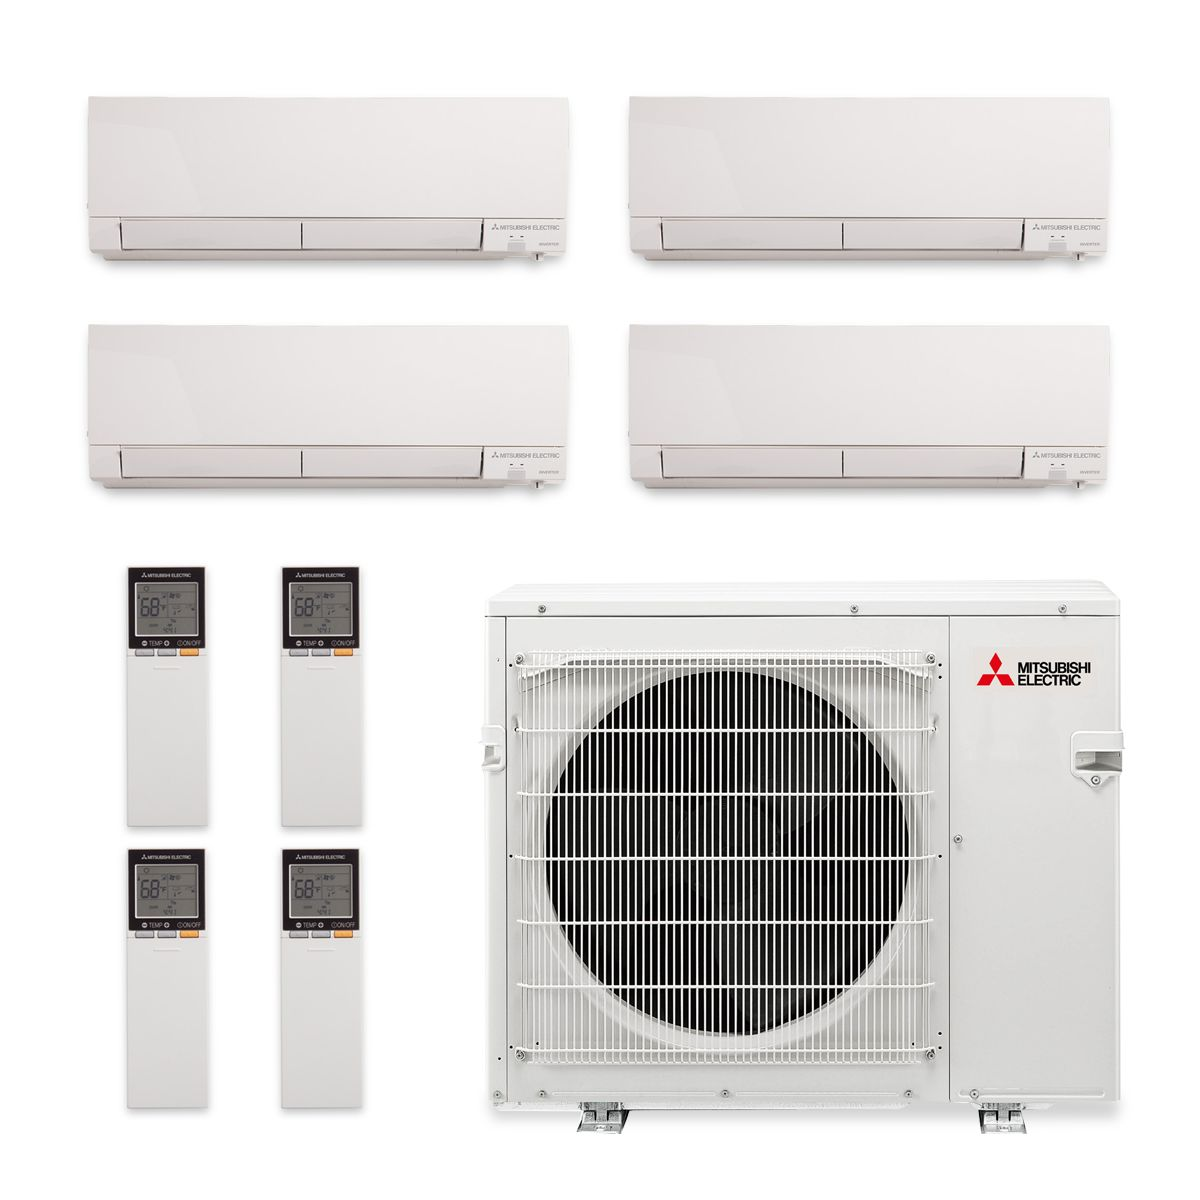 products electric heating outdoor banner and mxs series mxsnahz multi of example ductless pumps mitsubishi mr air conditioners slim heat cooling hyper m